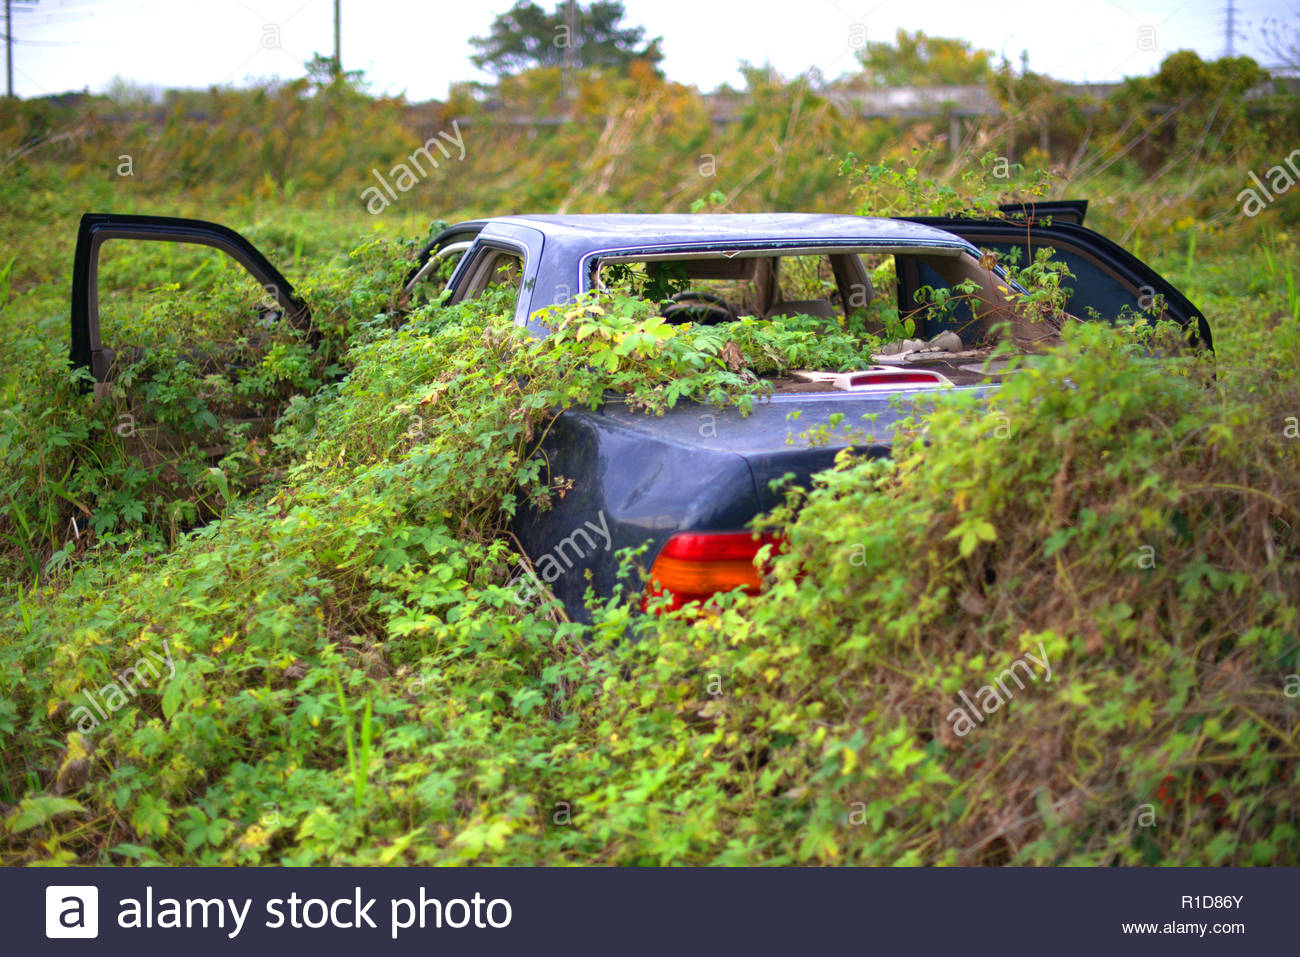 Abandoned overgrown car in field. Stock Photo